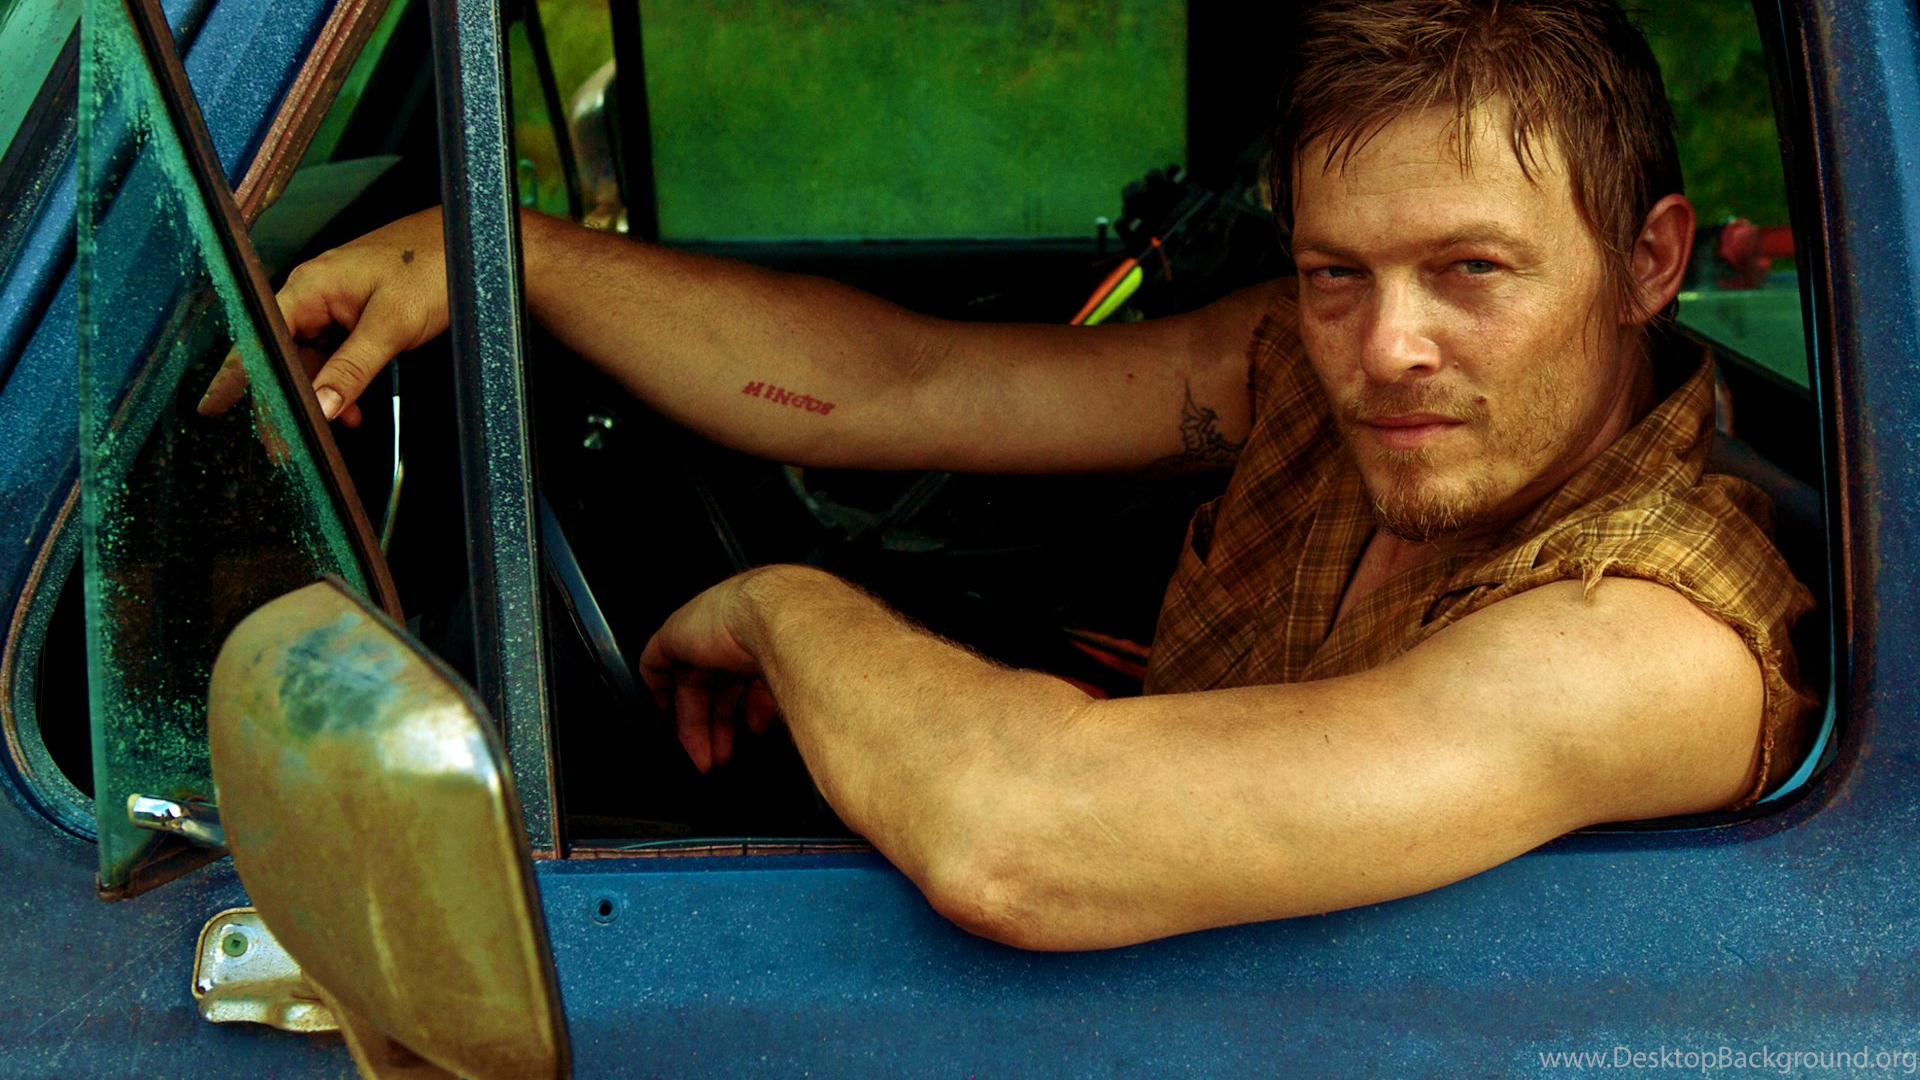 Hd Wallpaper Daryl Dixon The Walking Dead Hd Wallpapers Desktop